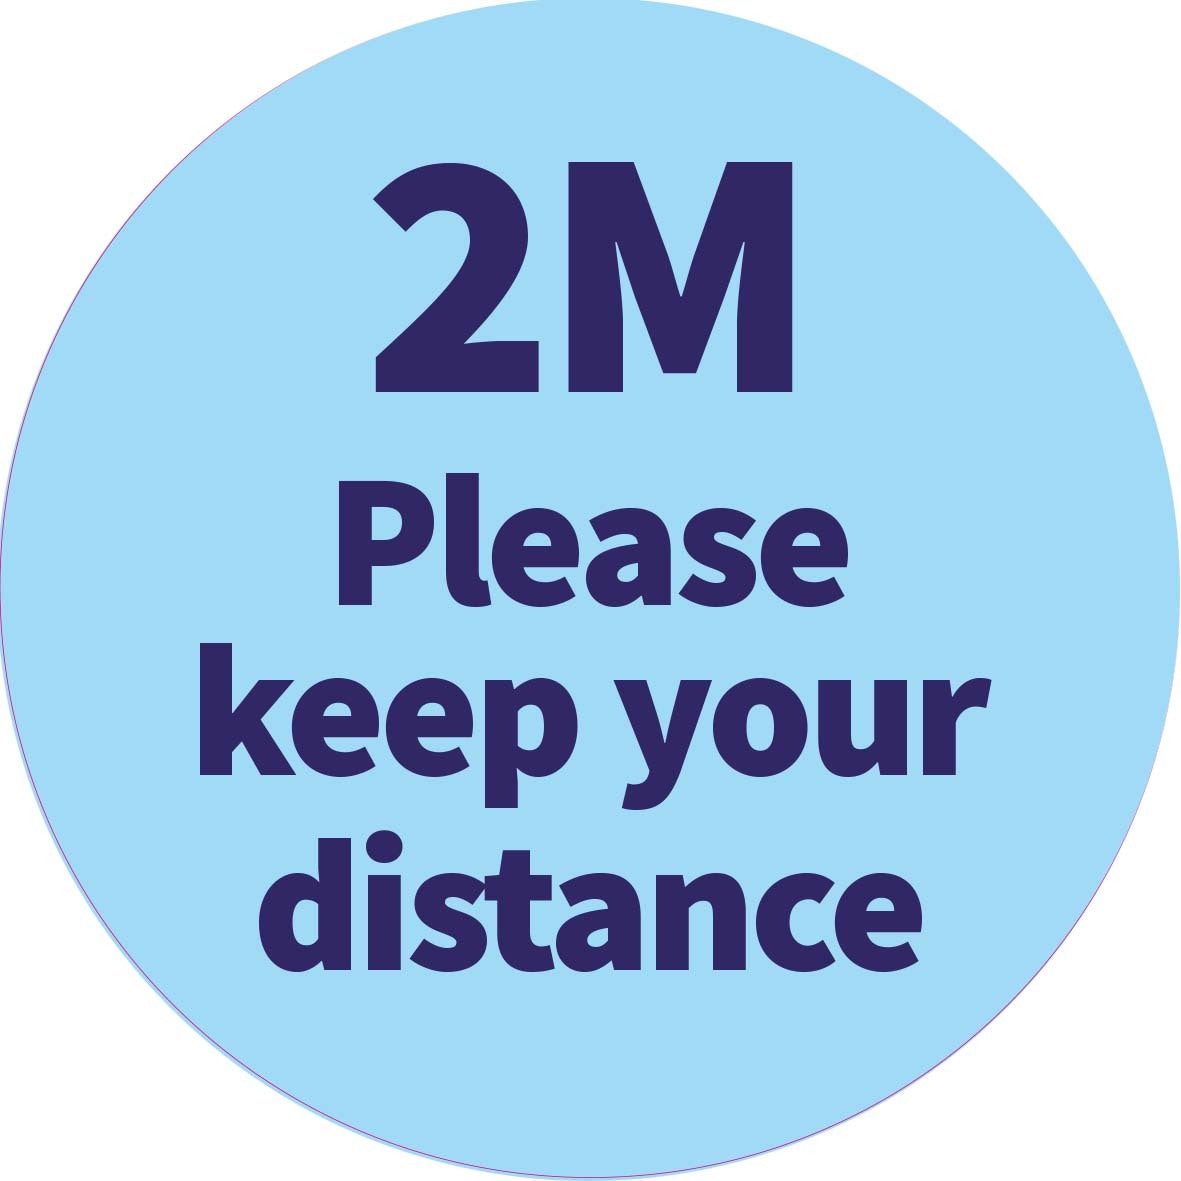 Keep your distance - 2m